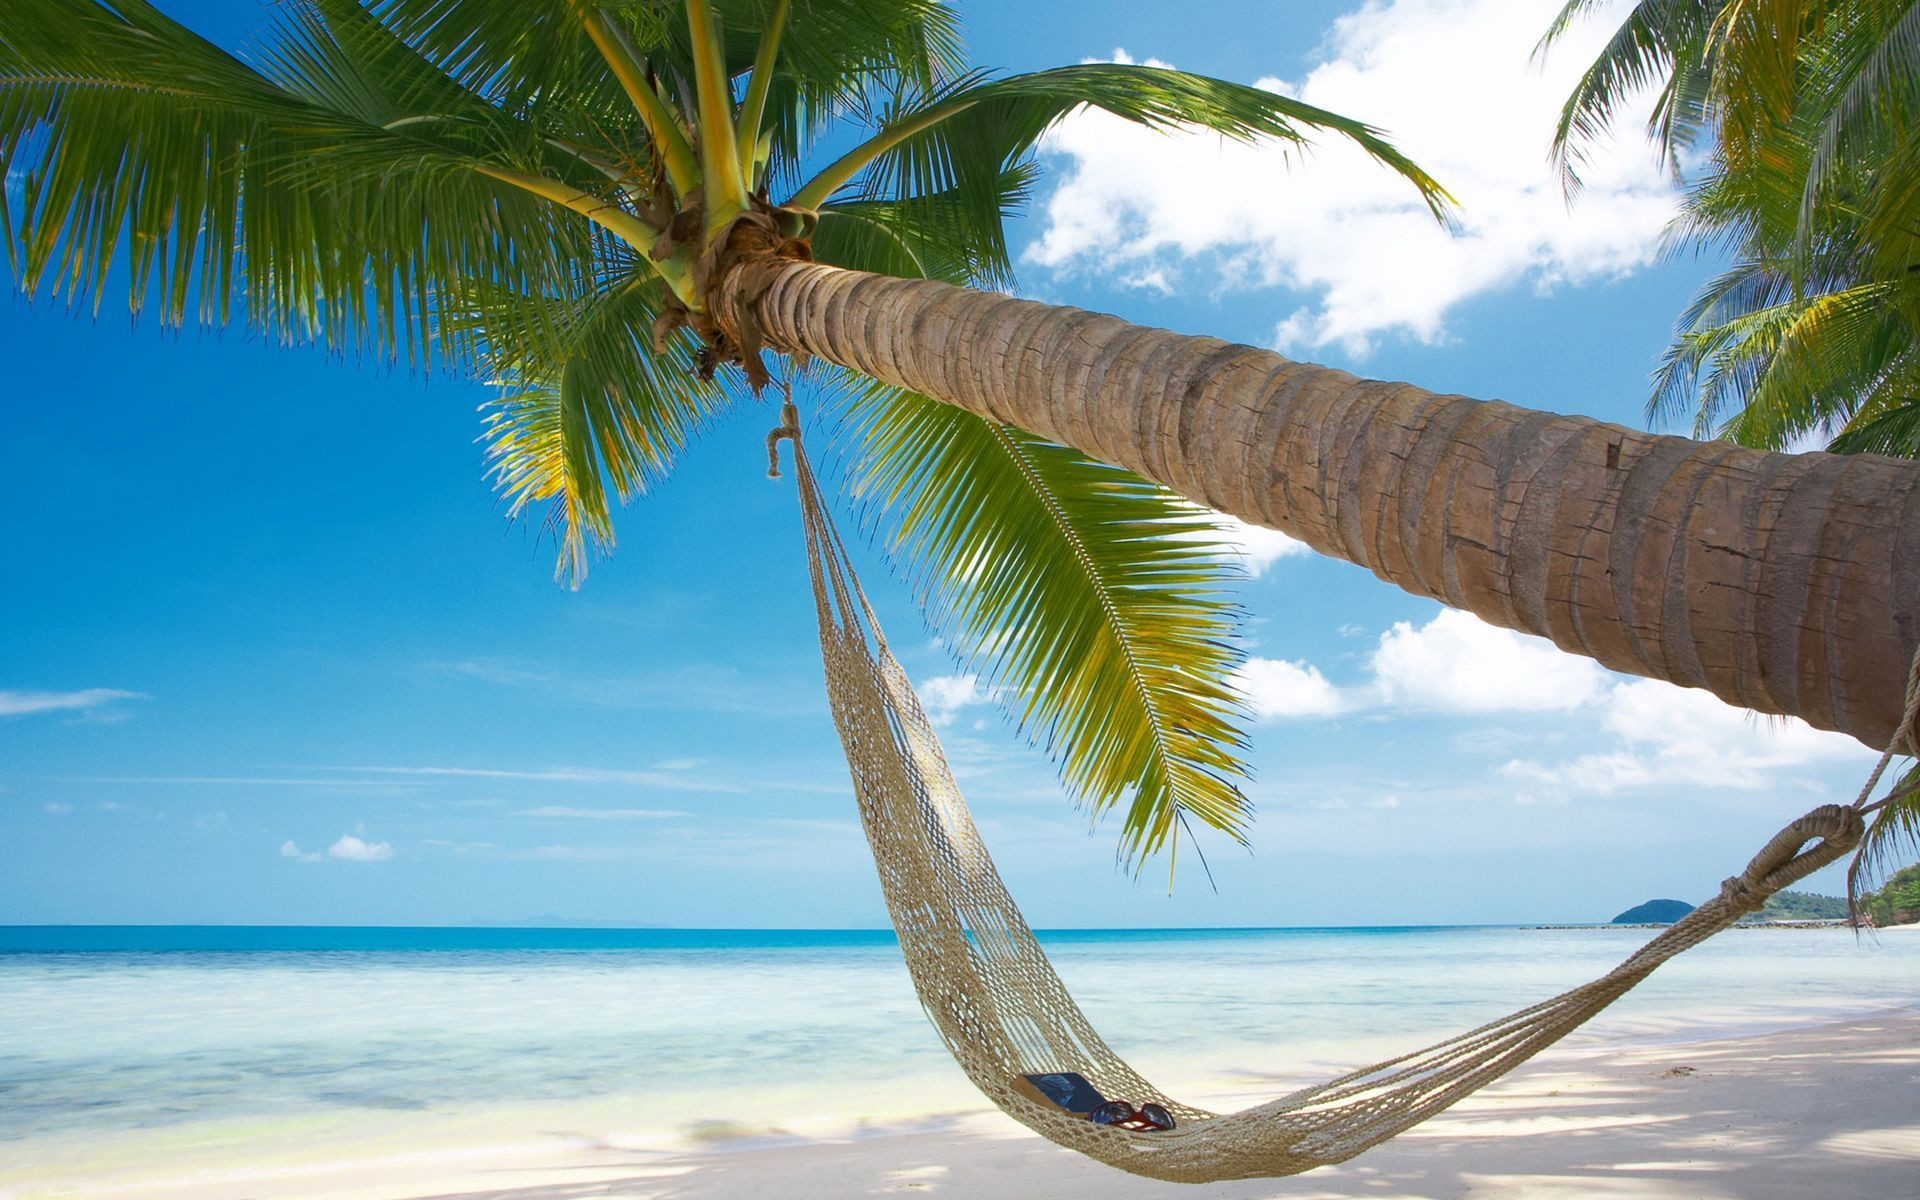 Collection of Beach Hammock Wallpaper on HDWallpapers